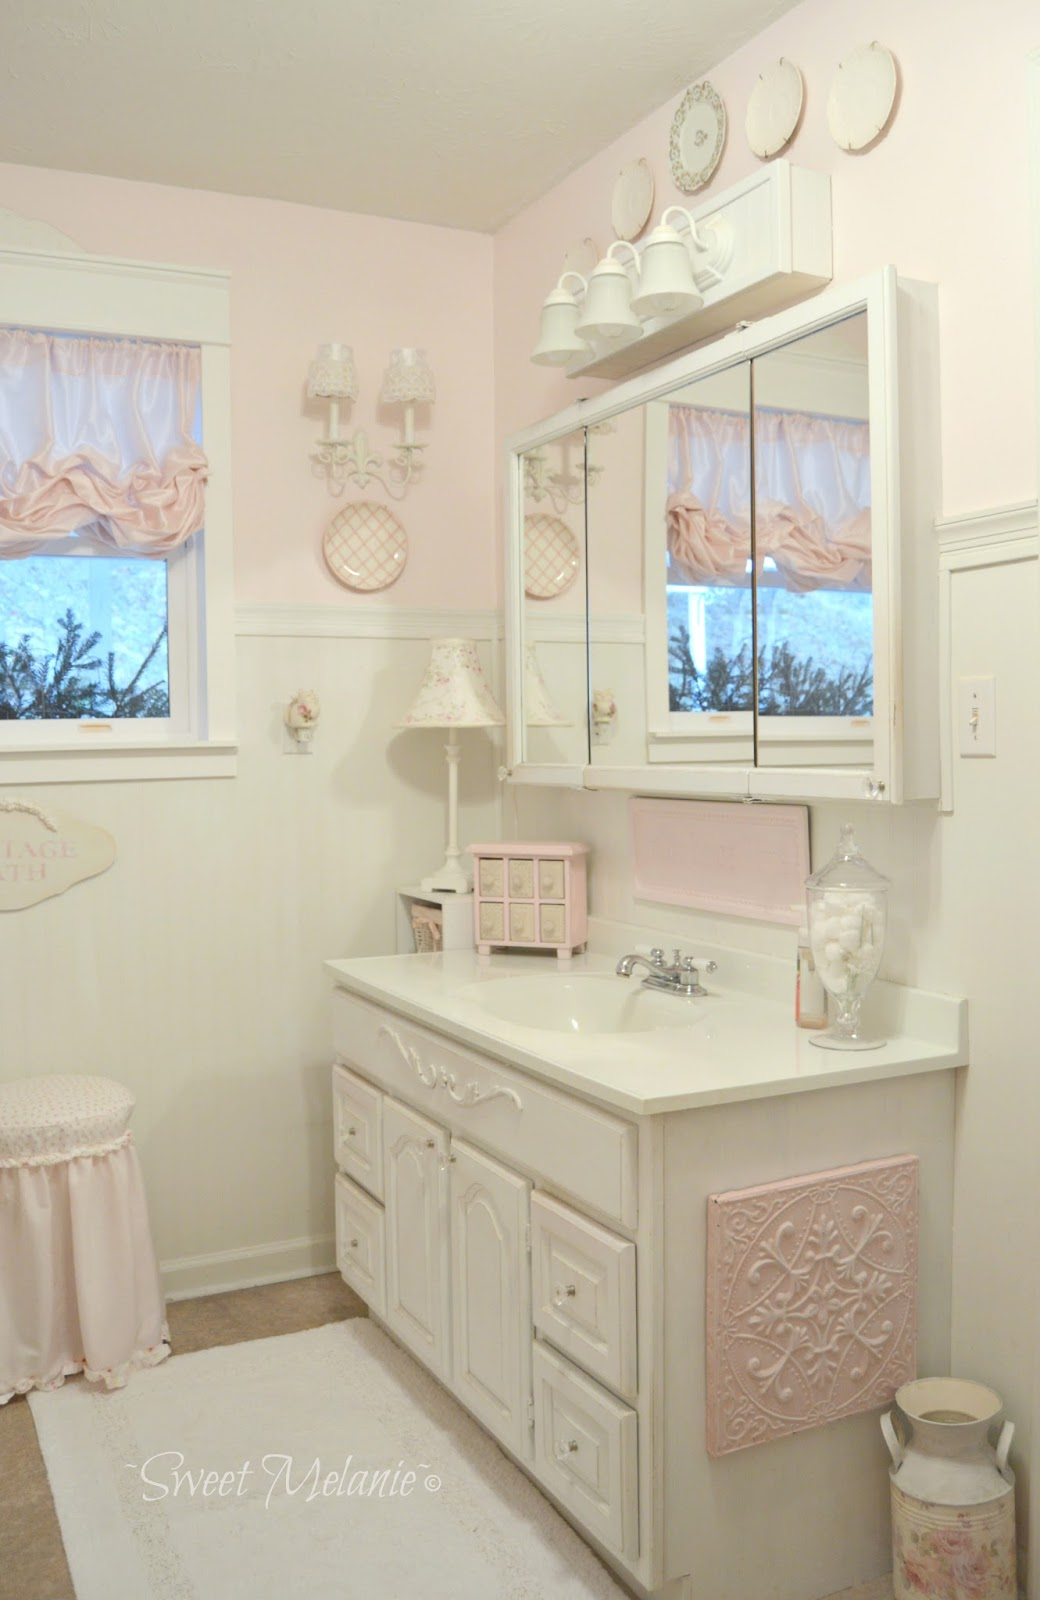 Cottage Chic Bathroom With Ruffles Window Treatments.